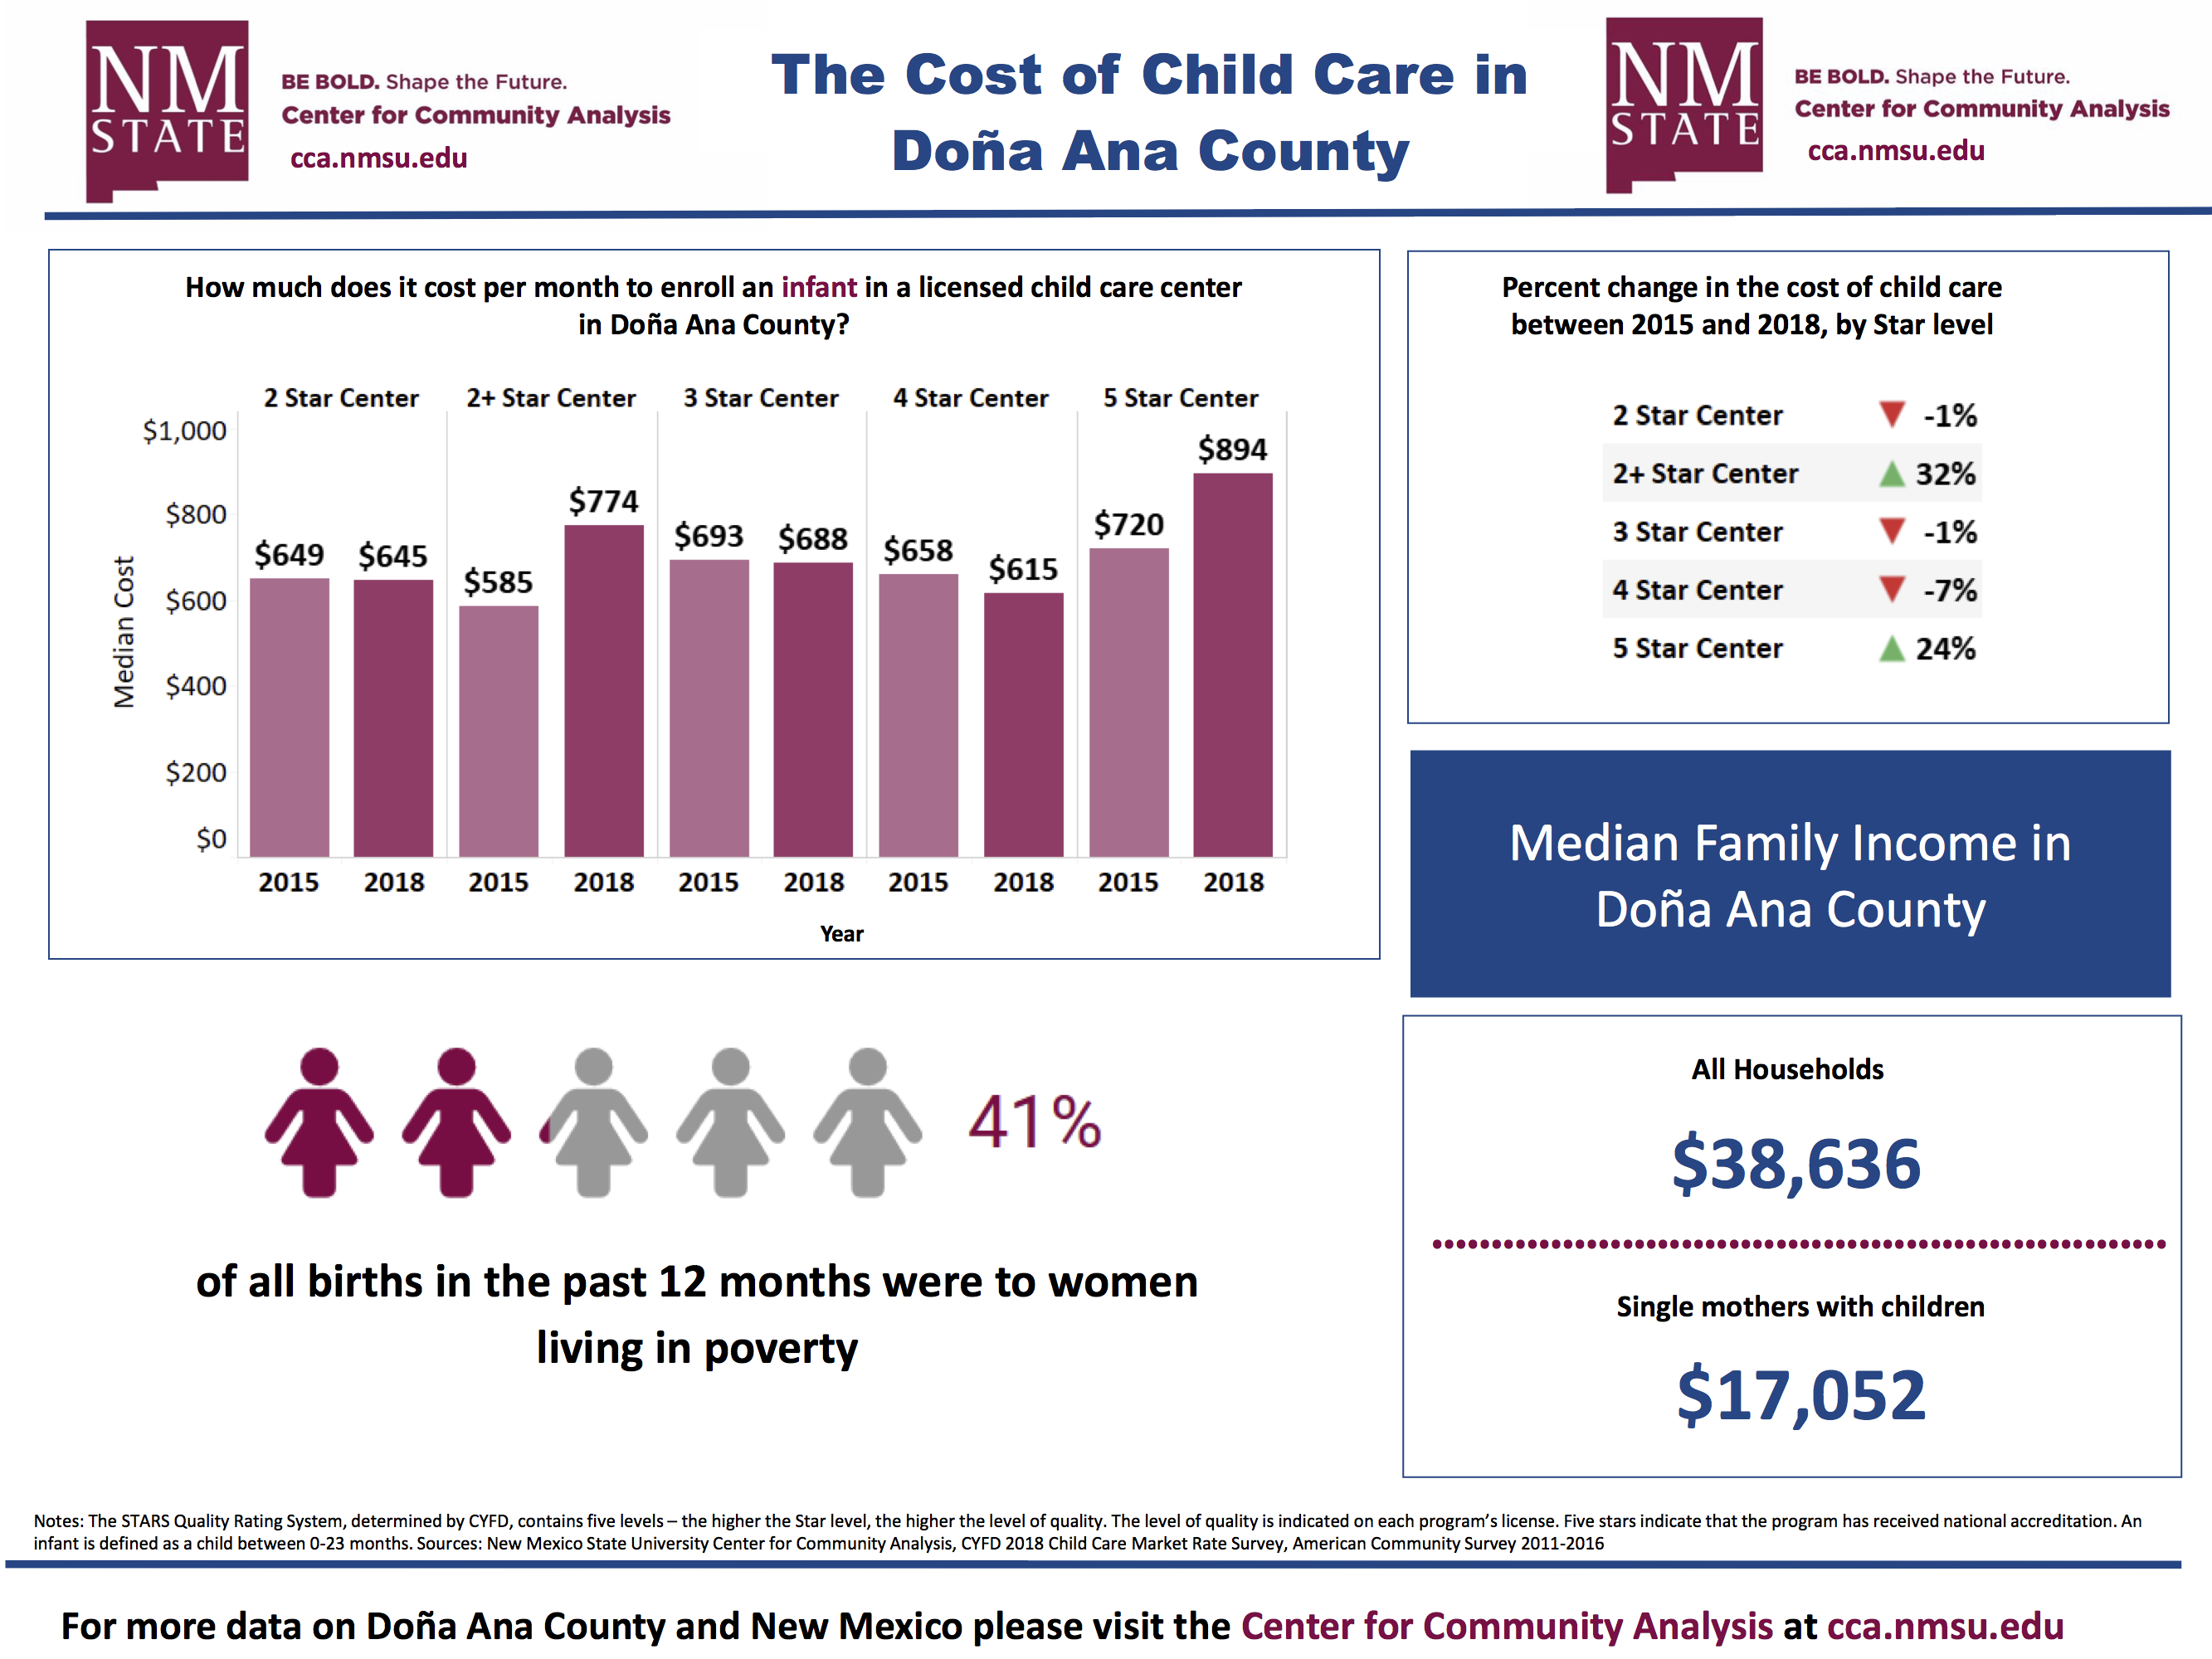 The Cost of Childcare in Doña Ana County